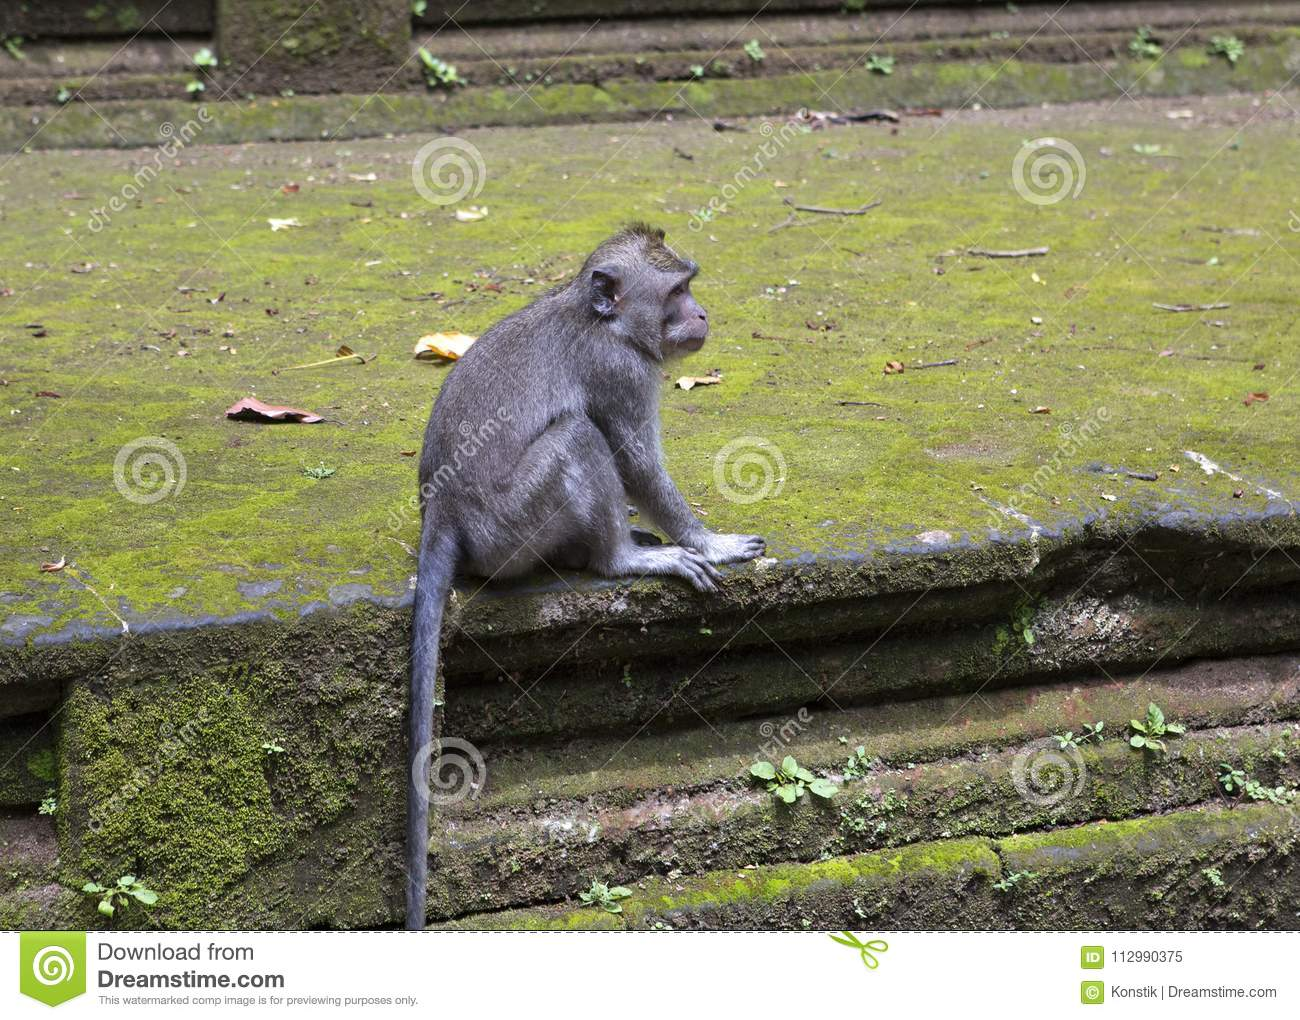 Long-tailed macaque-Macaca fascicularis in Sangeh Monkey Forest in Bali, Indonesia